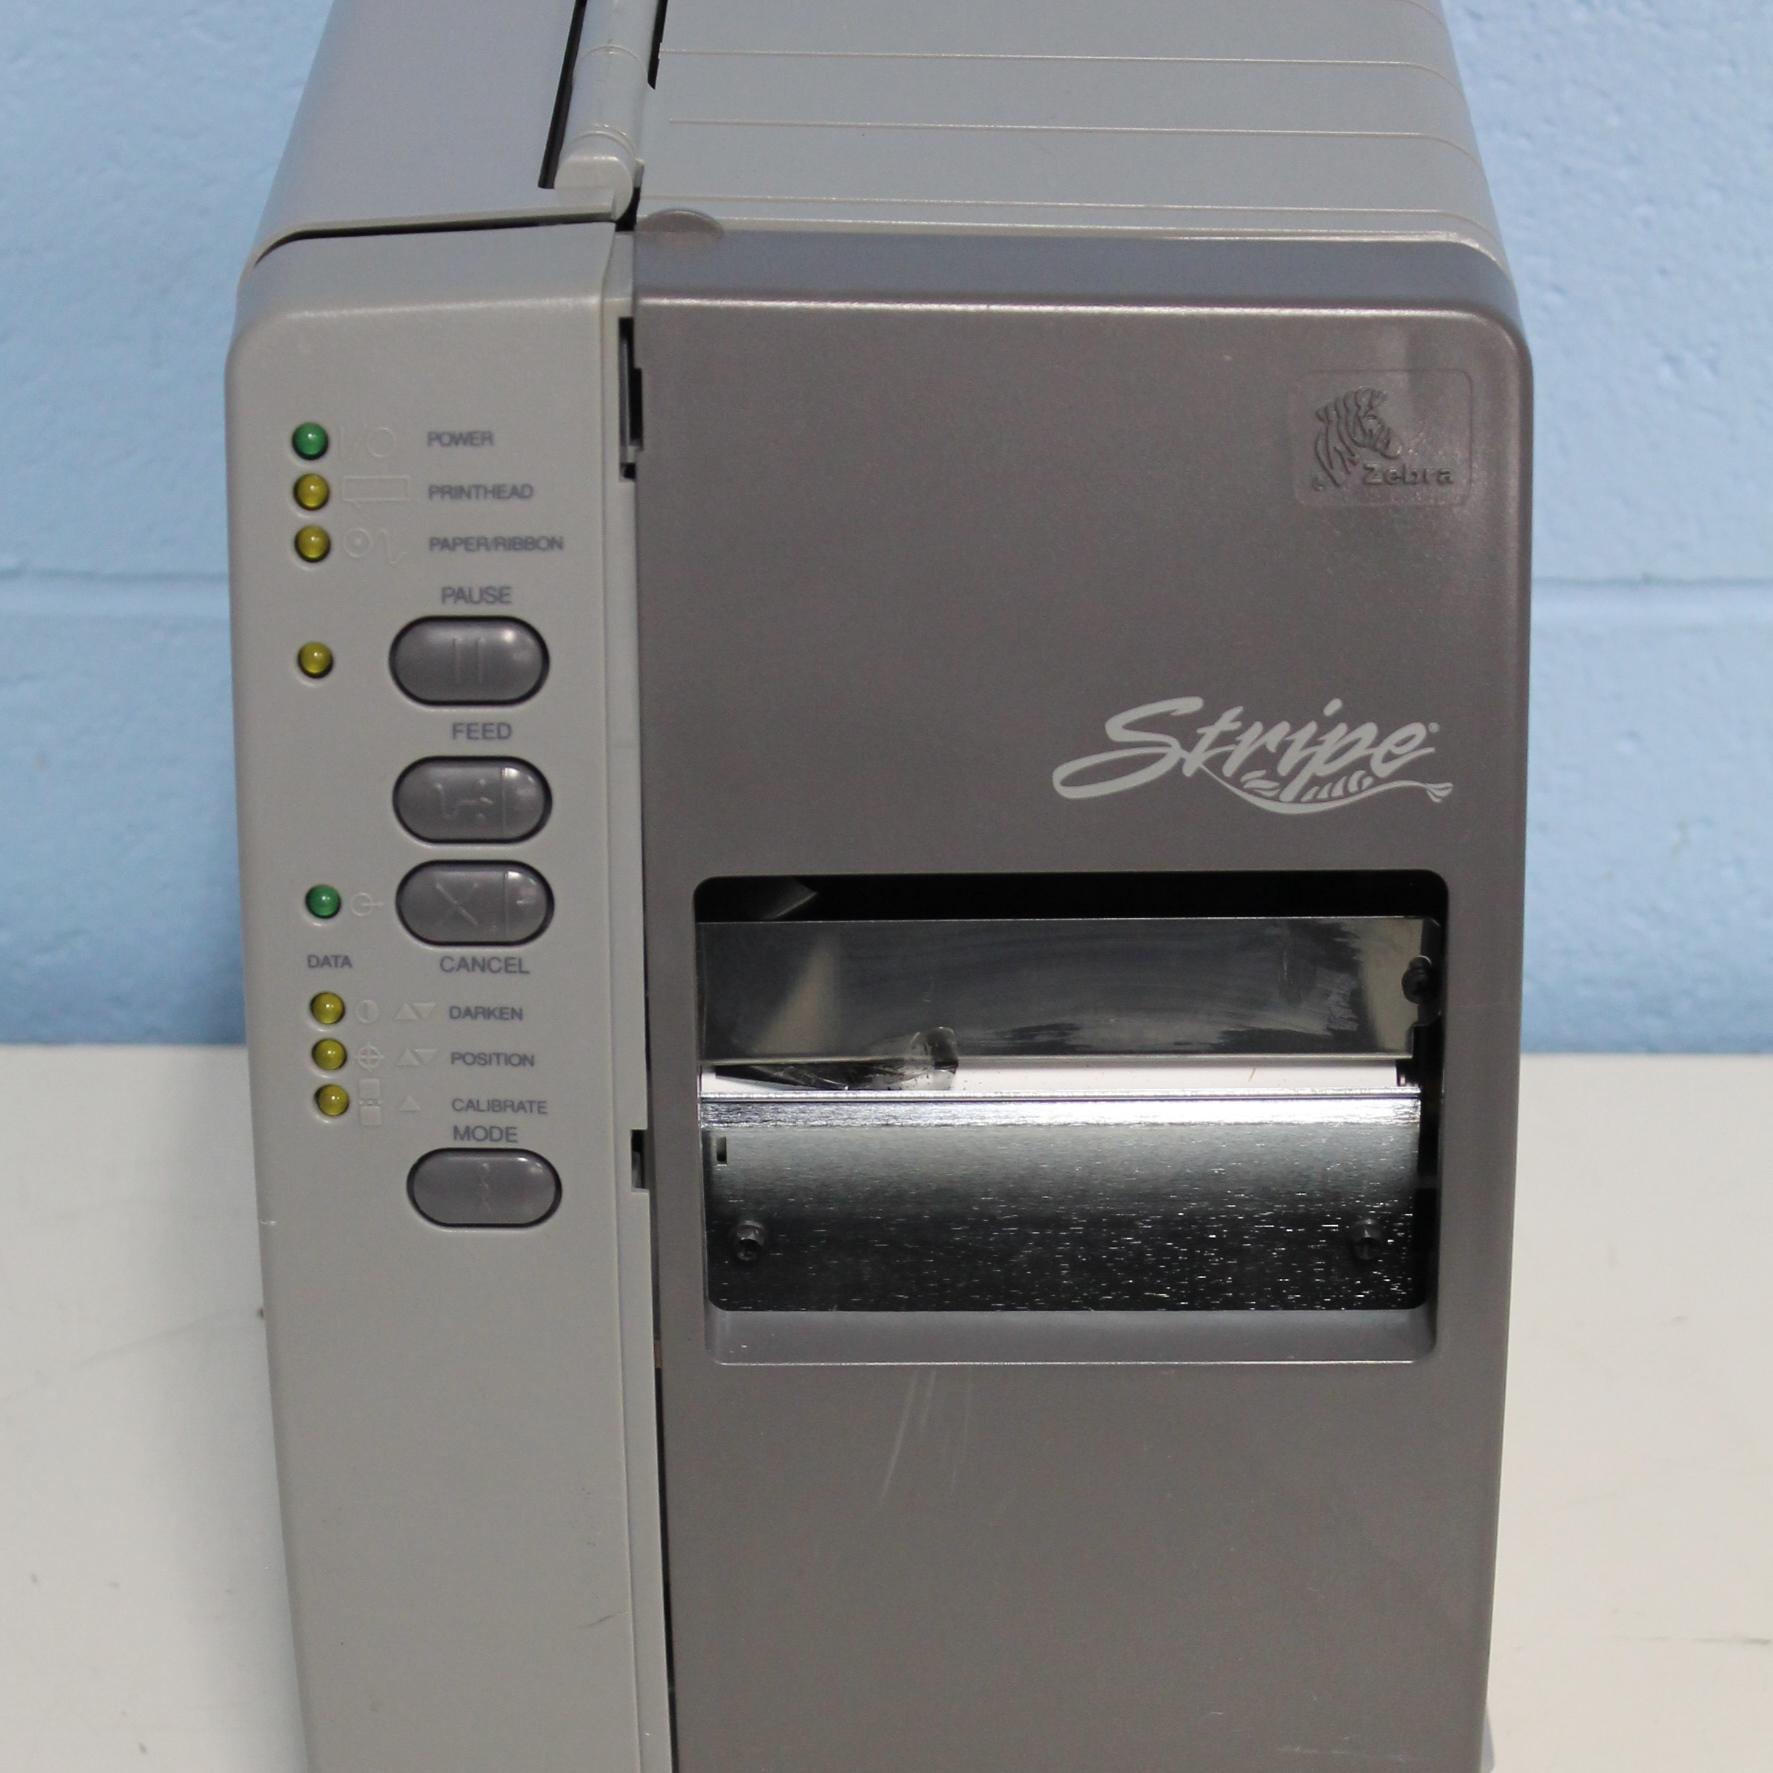 S600 Label Thermal Printer Name